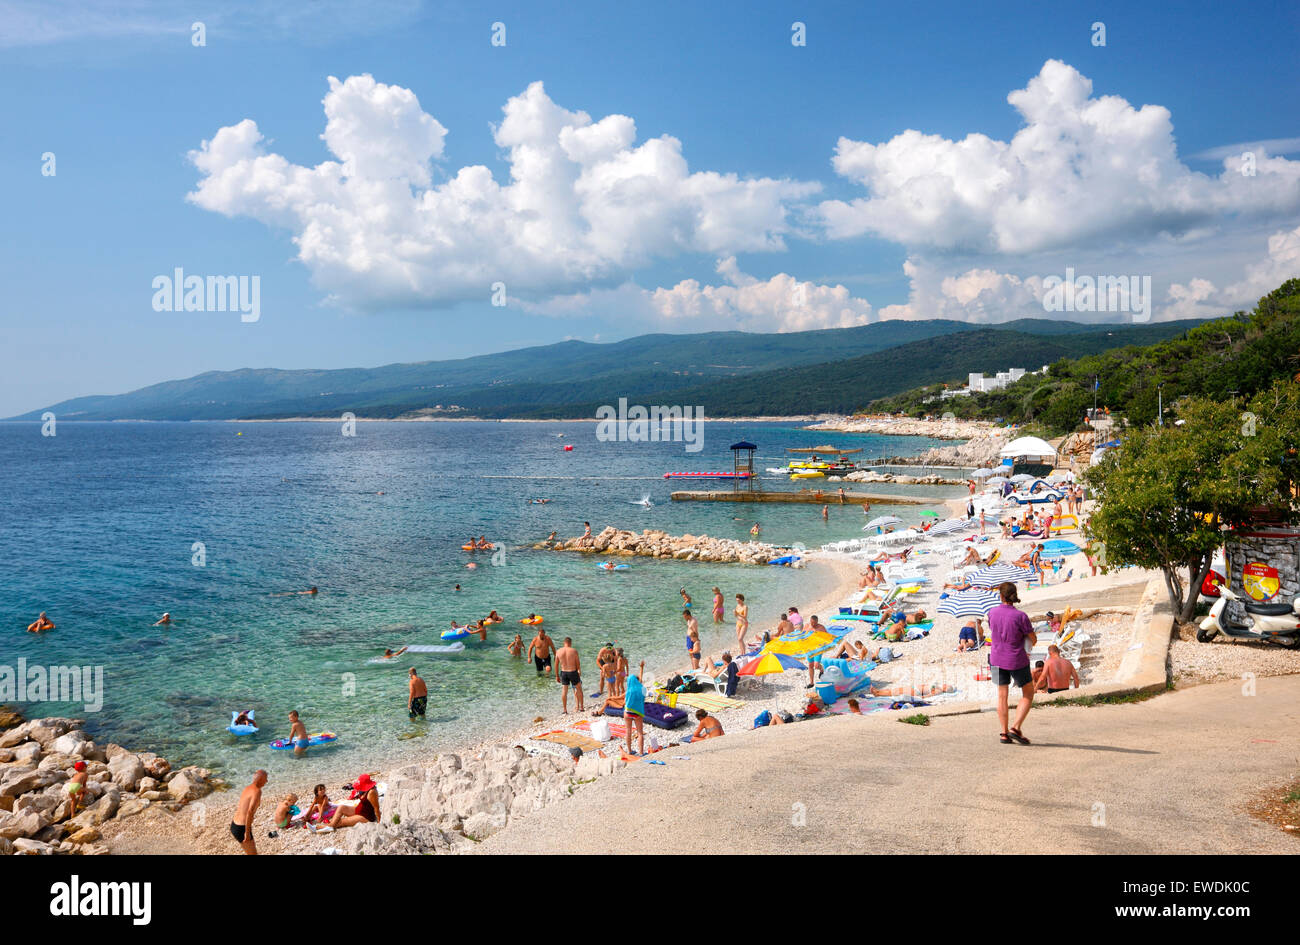 Beach in Rabac town in Istria. - Stock Image